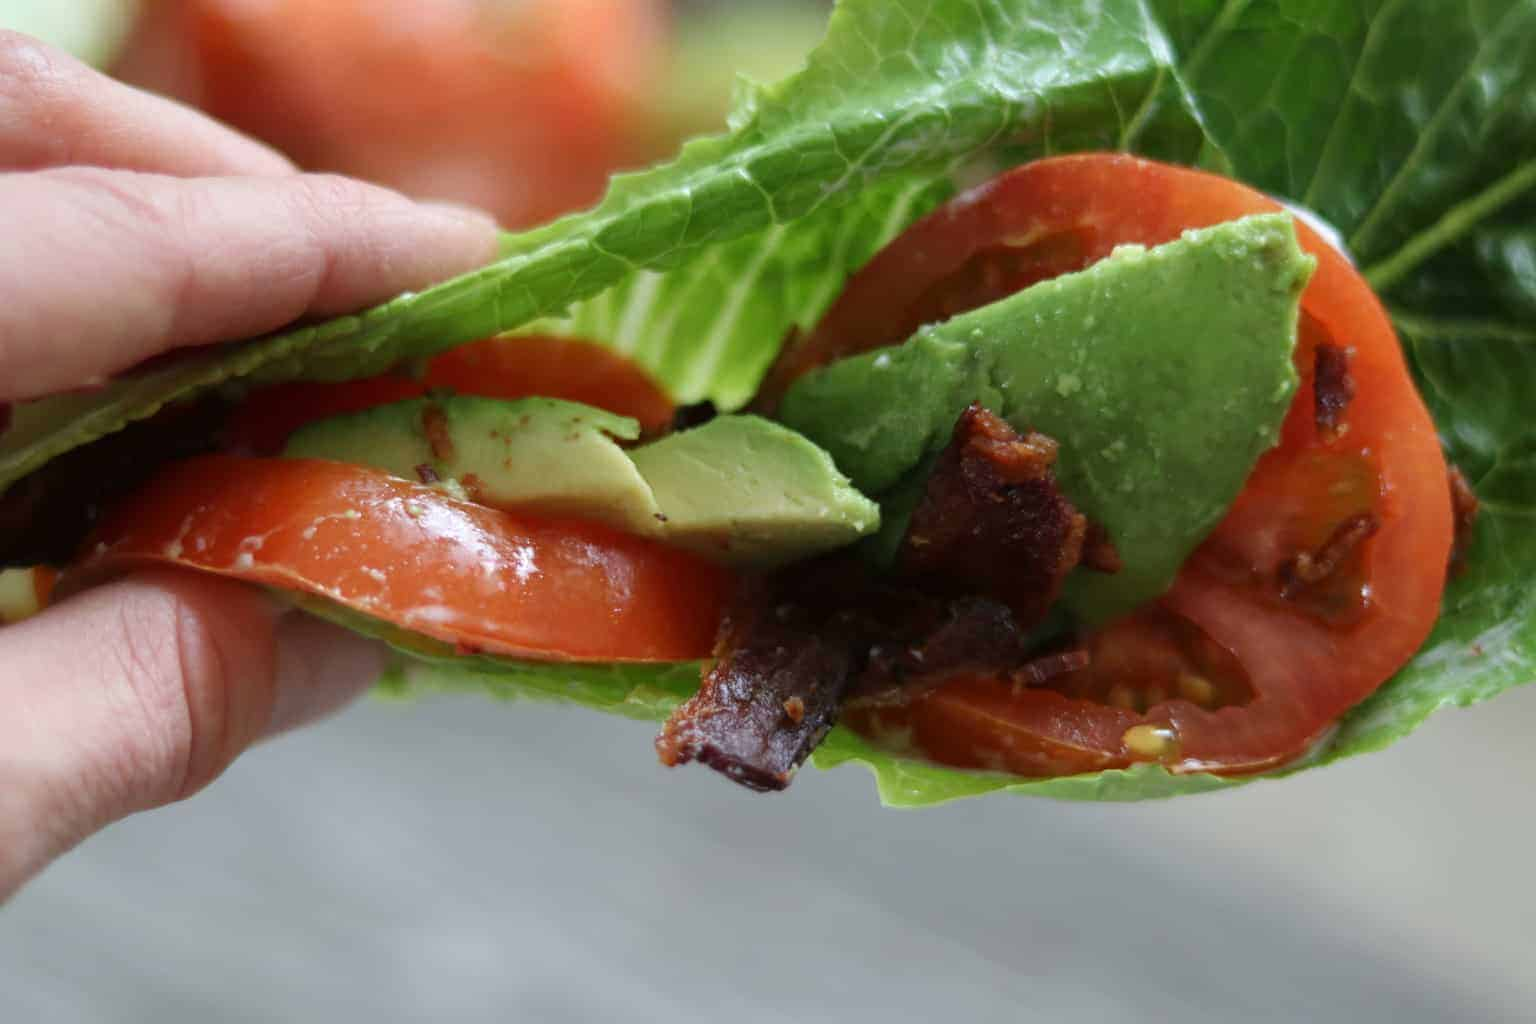 Tomatoes, avocado, and bacon rapped in lettuces.